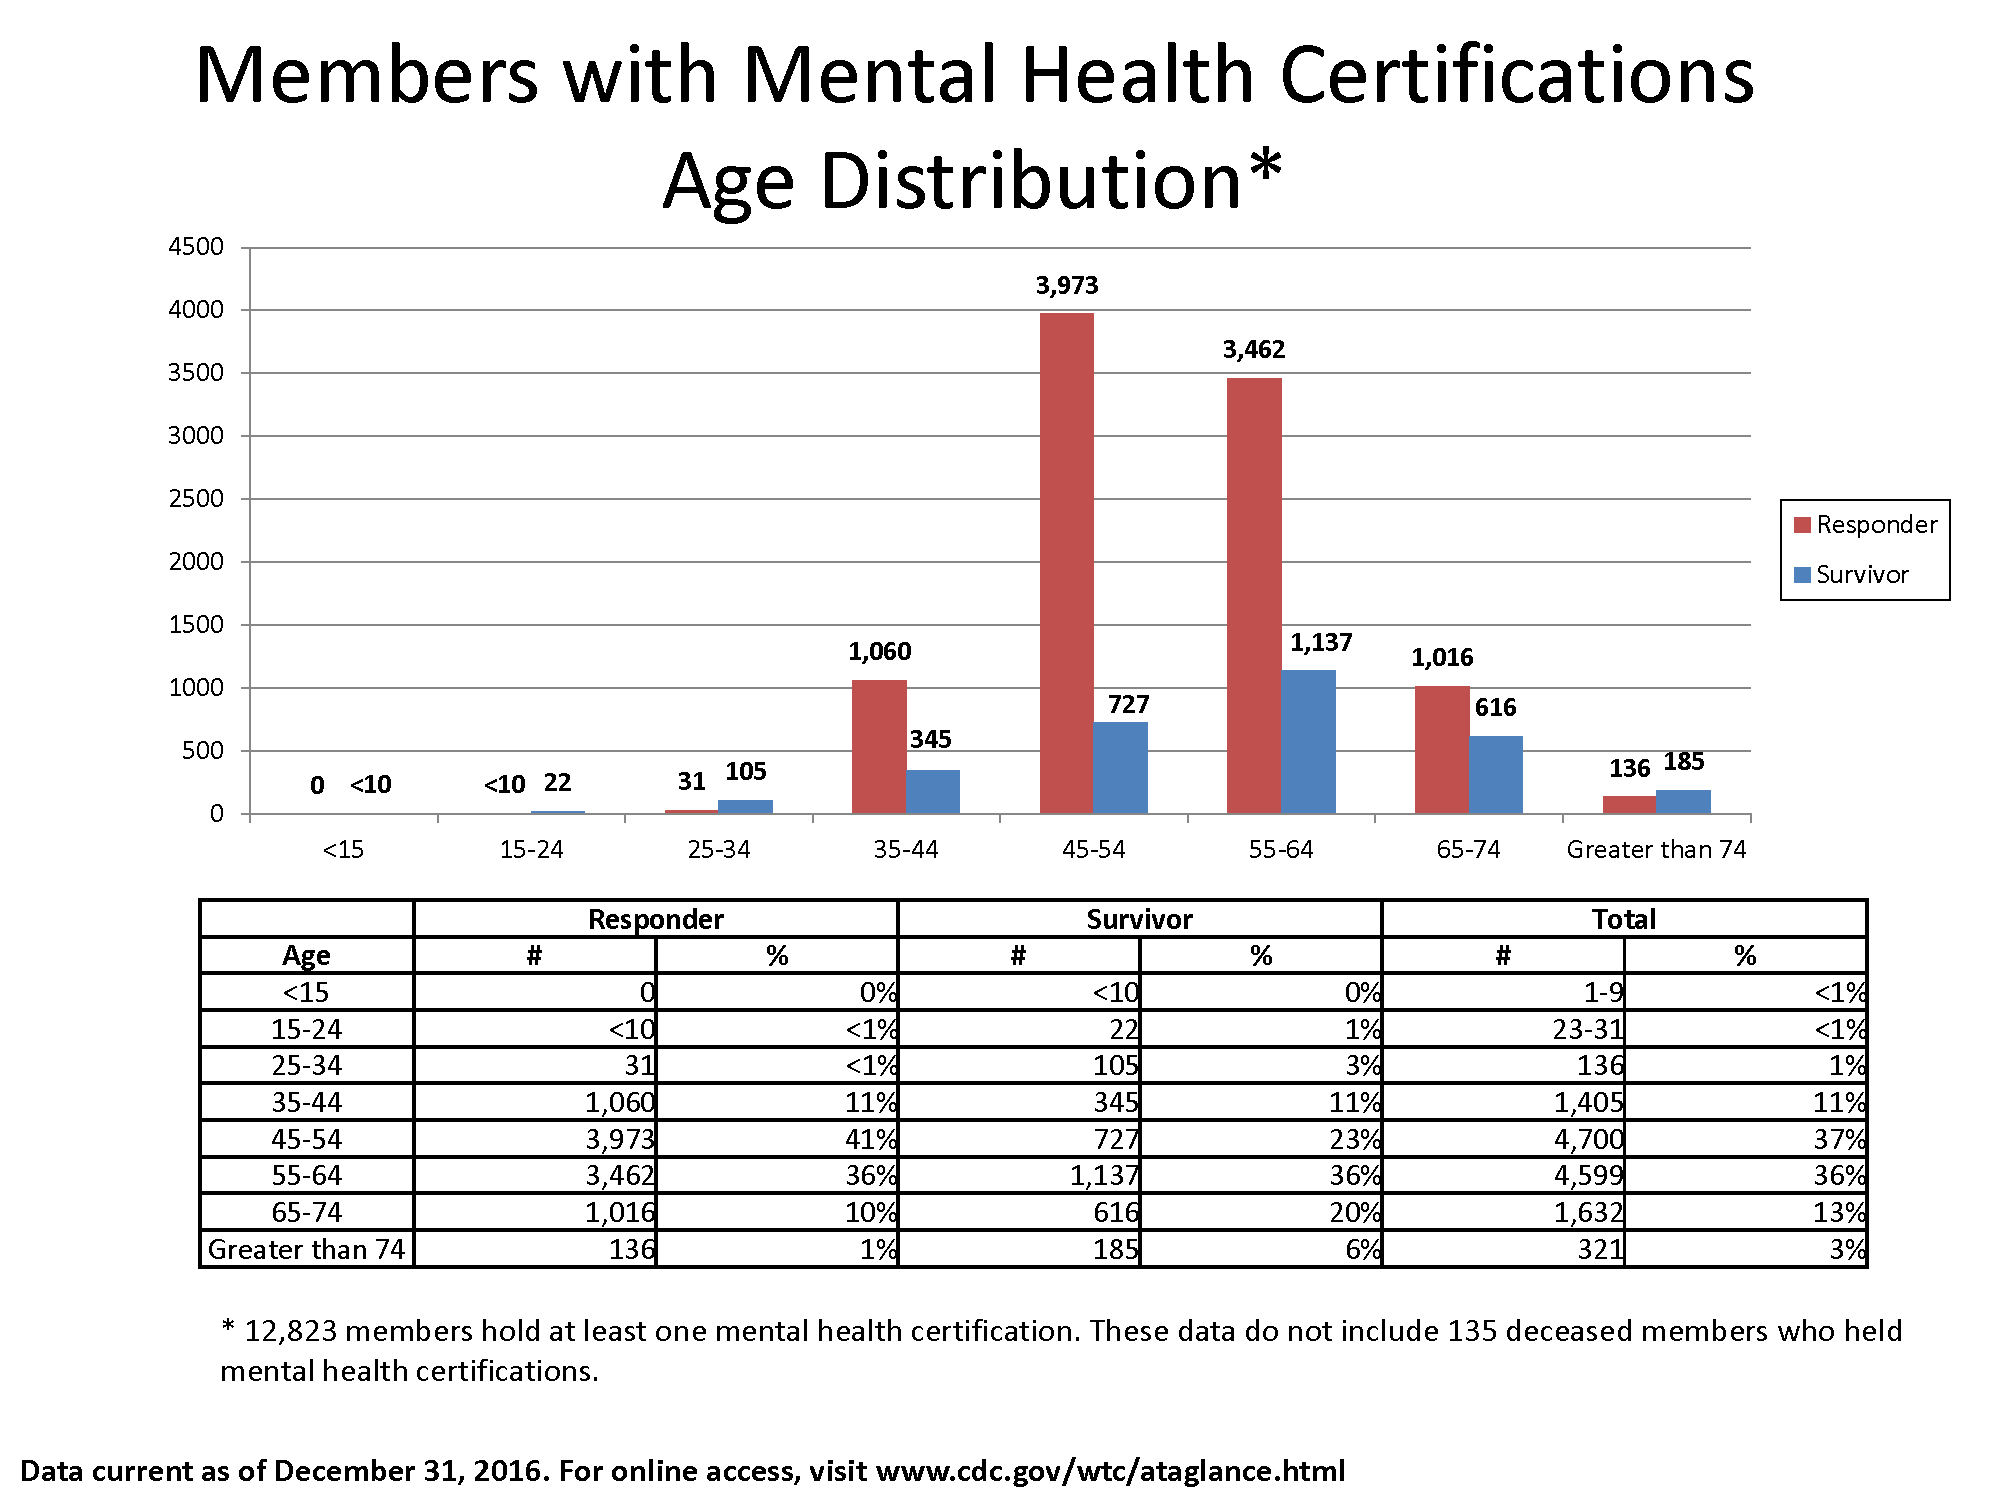 Bar chart of data in the table showing the number of members with mental health certifications by Responder and Survivor and age bracket.